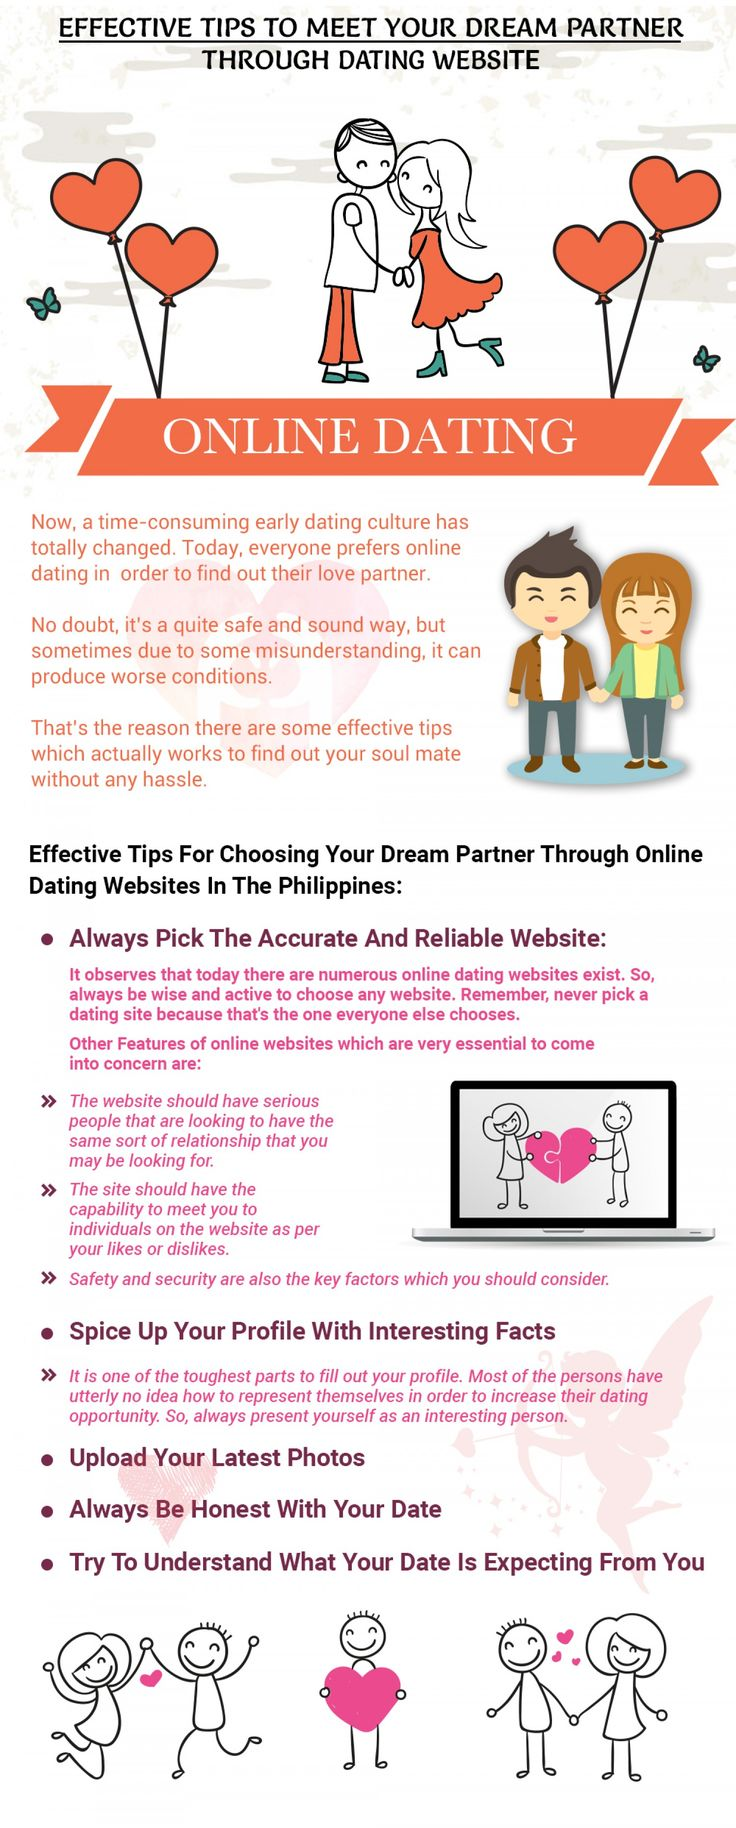 Nowadays, Everyone prefer Online Dating which has become a craze among people. You should know the effective tips for choosing the Dream partner through Philippens Dating site. Always pick the Accurate and Reliable Website. Spice up your profile with interesting facts.